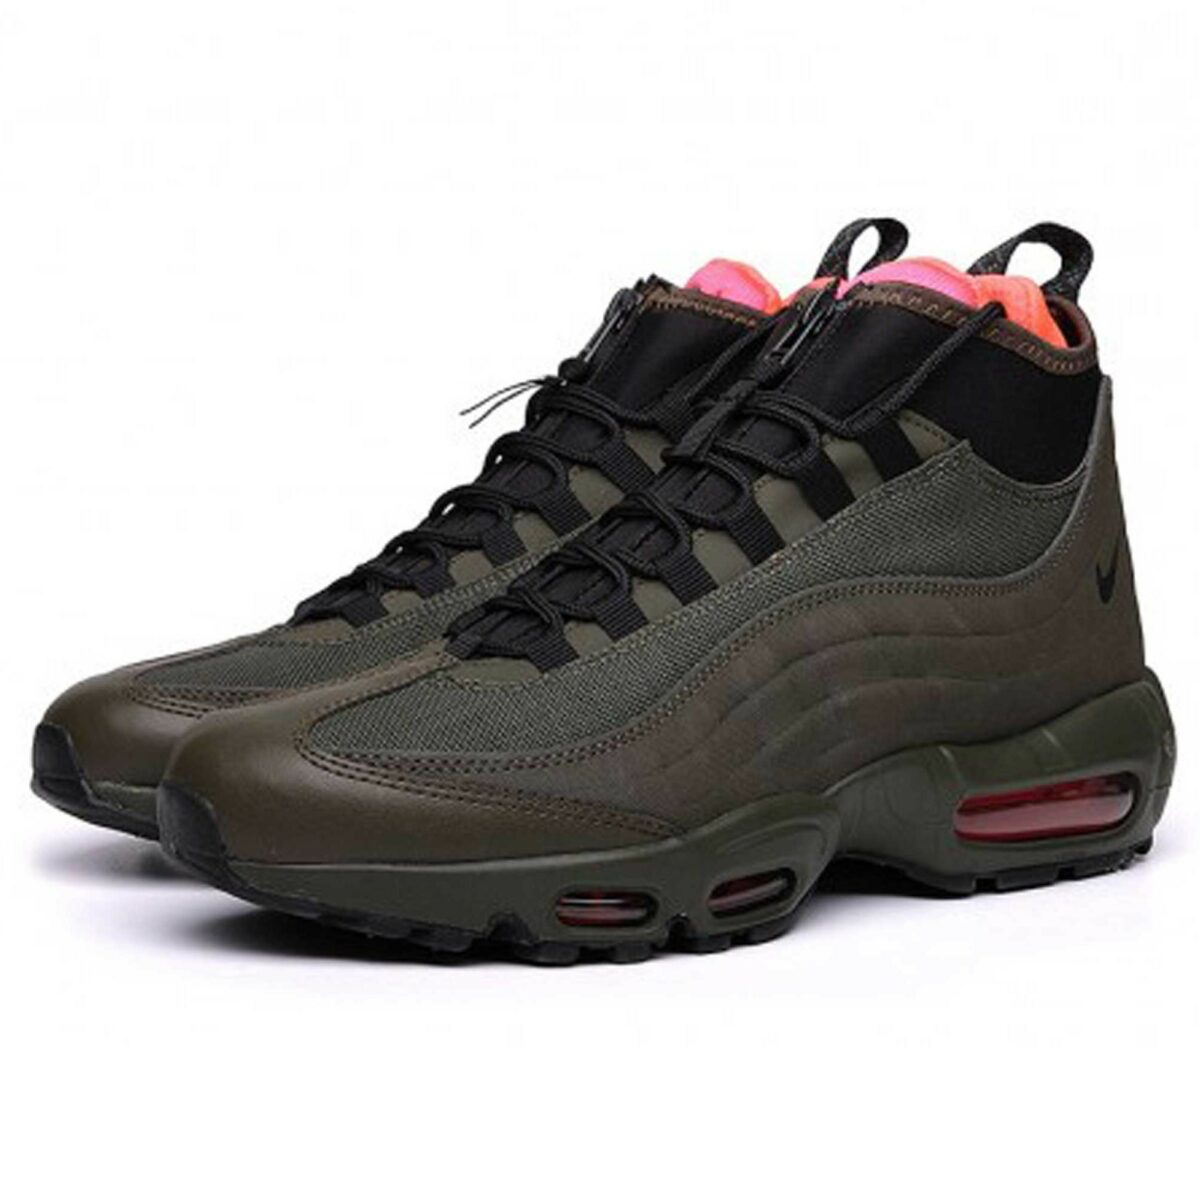 nike air max 95 sneakerboot 806809_300 купить